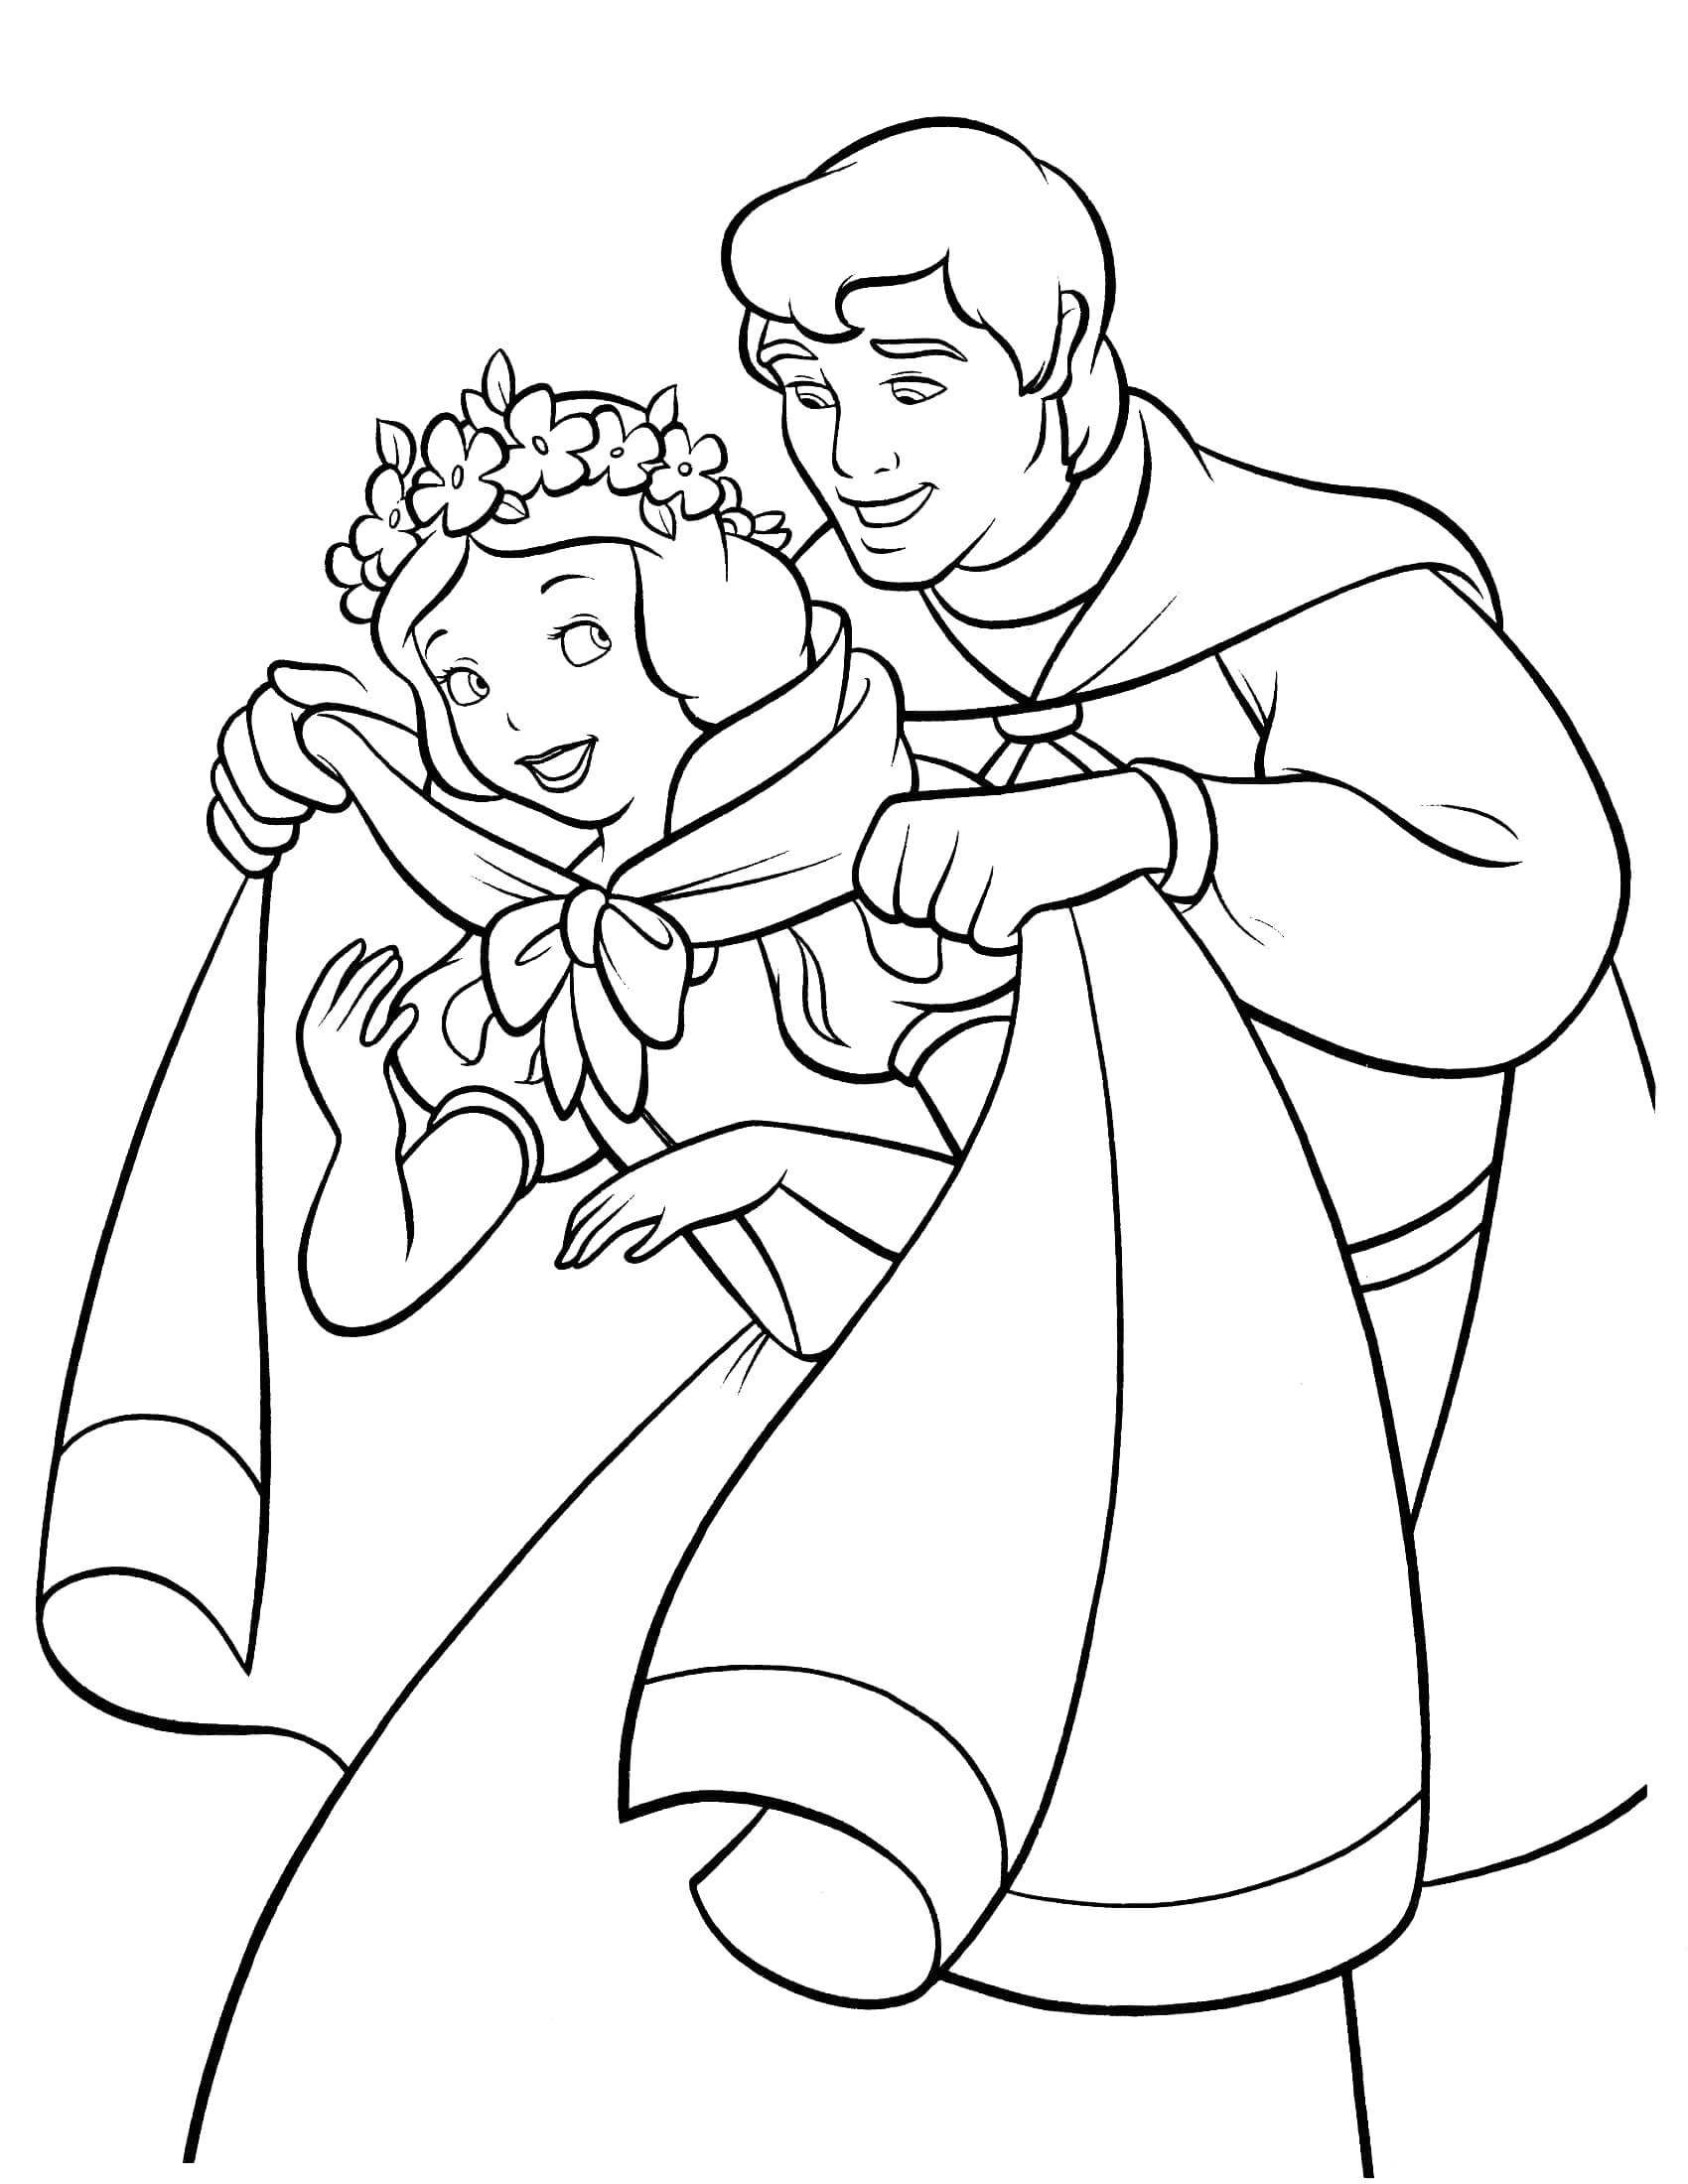 Snow White Coloring Pages Free to Print Snow White Coloring Pages Best Coloring Pages for Kids